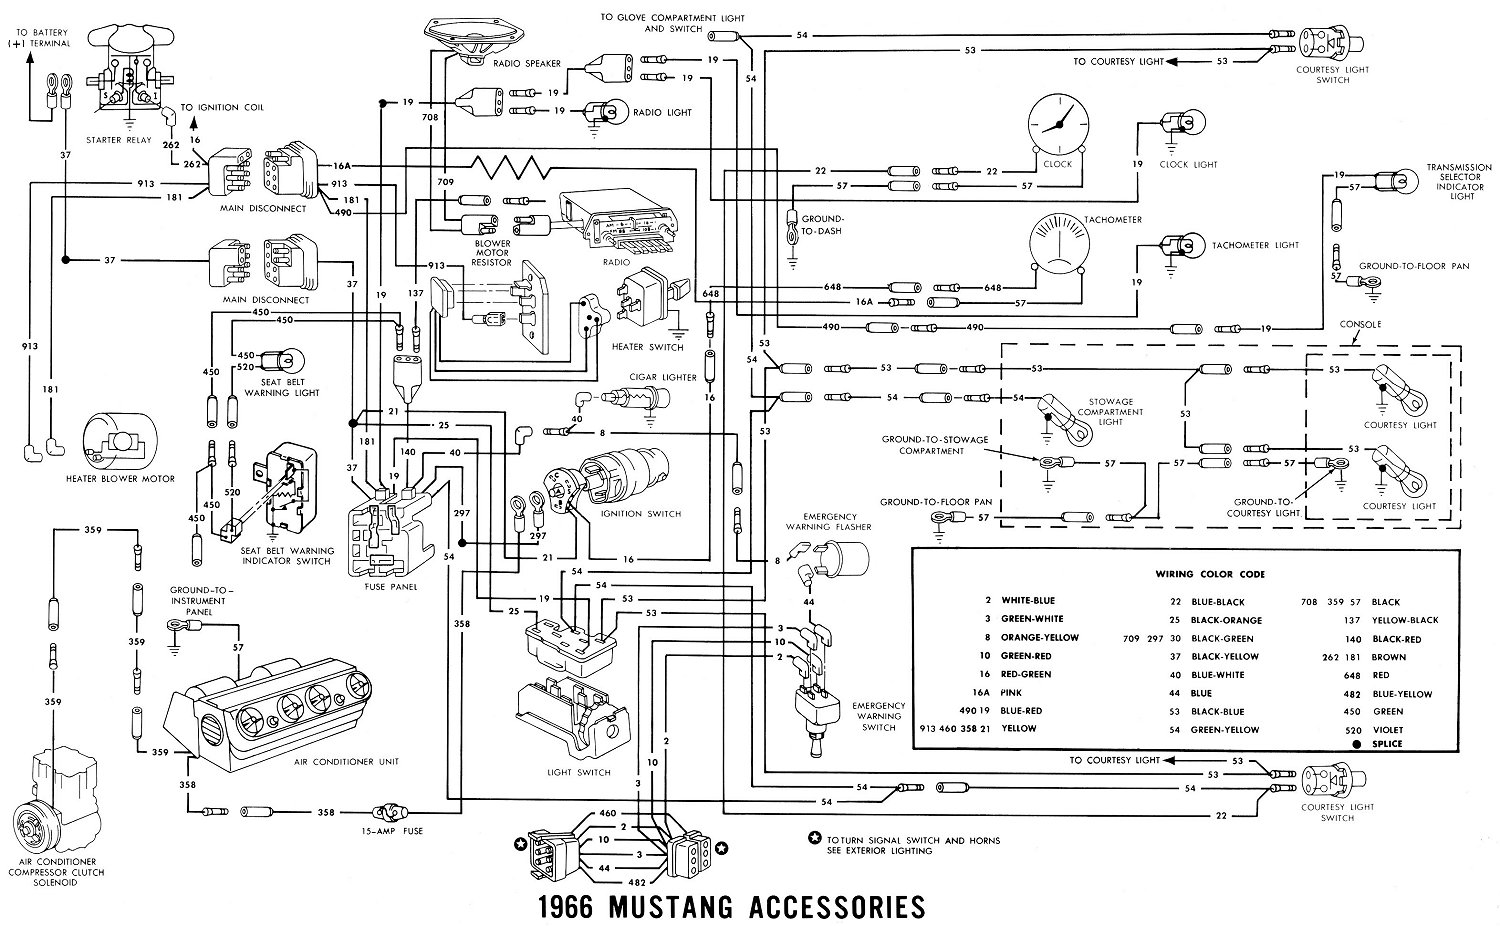 Tach Wiring Diagram Further Sun Super Tach Wiring Diagram Tachometer